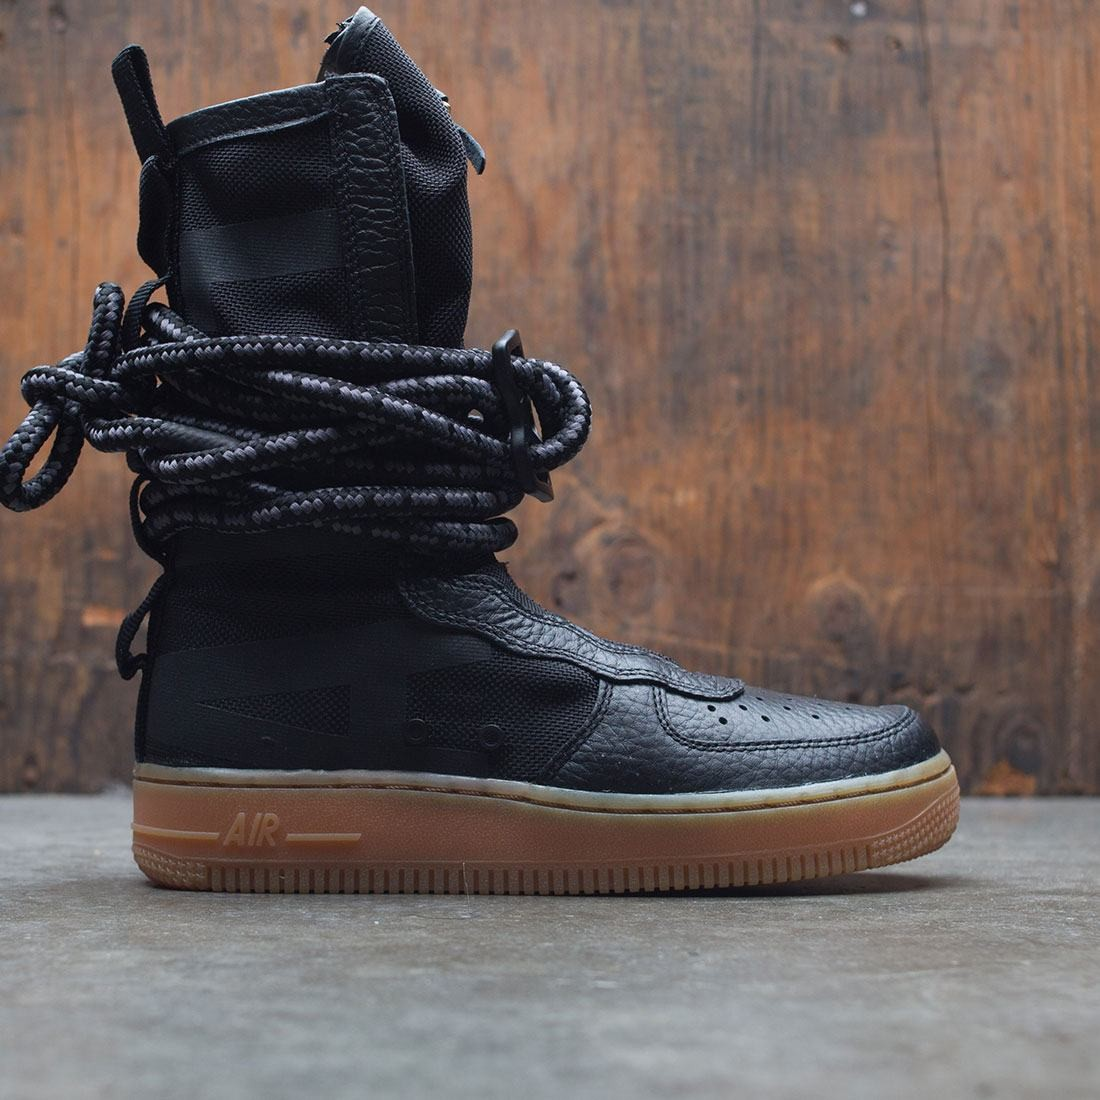 nike women sf air force 1 hi boot black black gum light brown 136c5430b8